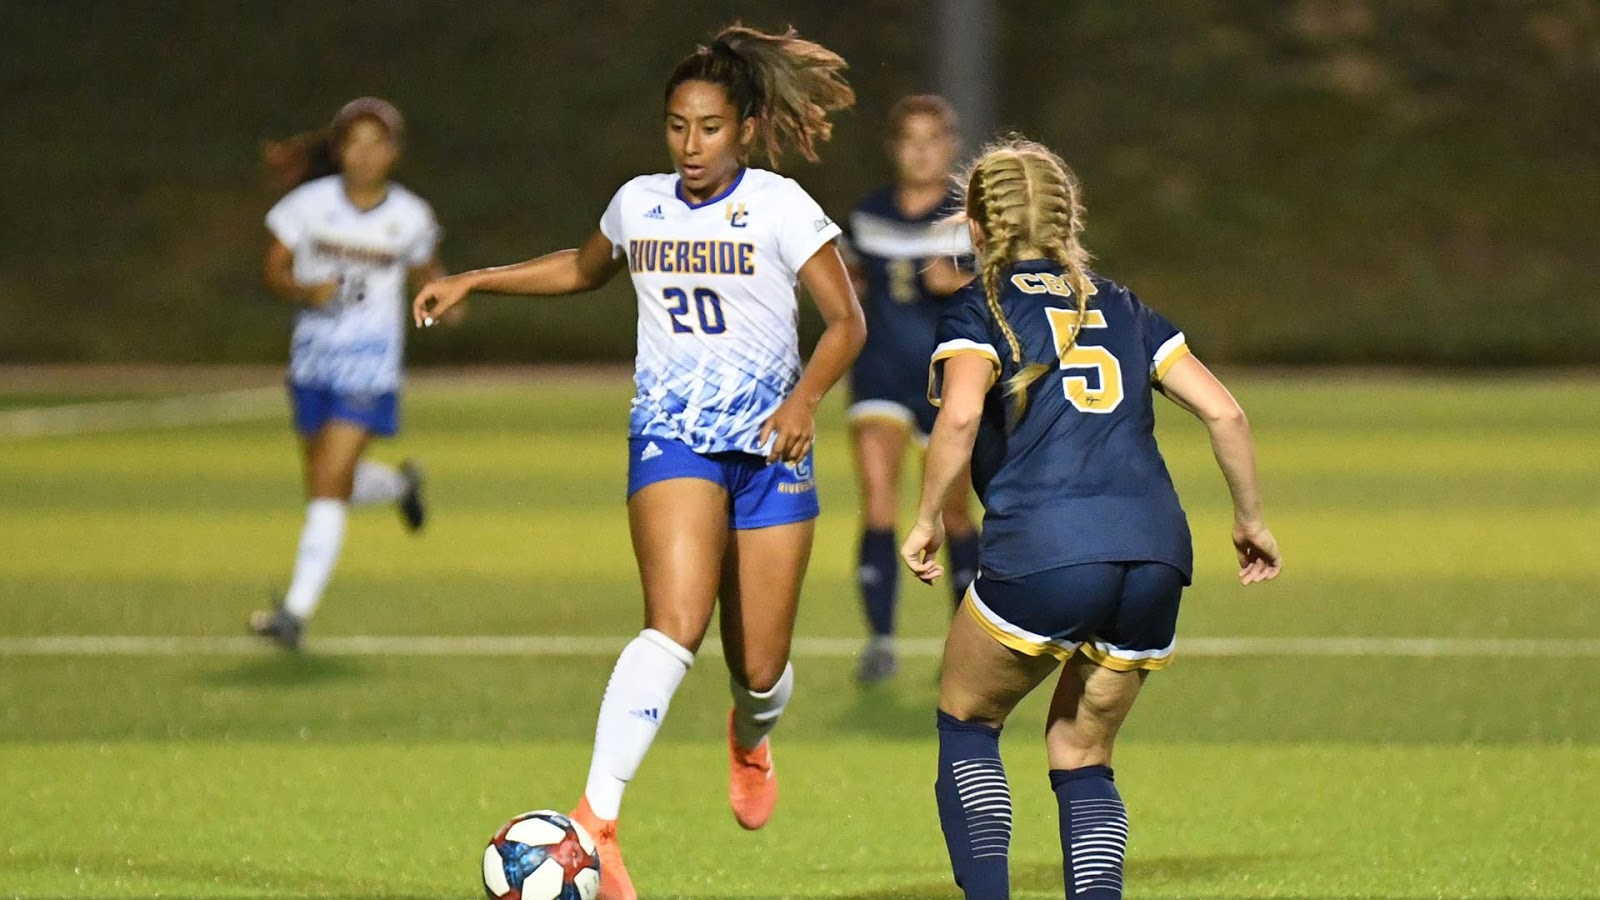 lowest price c8275 62874 College Soccer: UC Riverside Drops a 2-1 Heart Breaker at ...